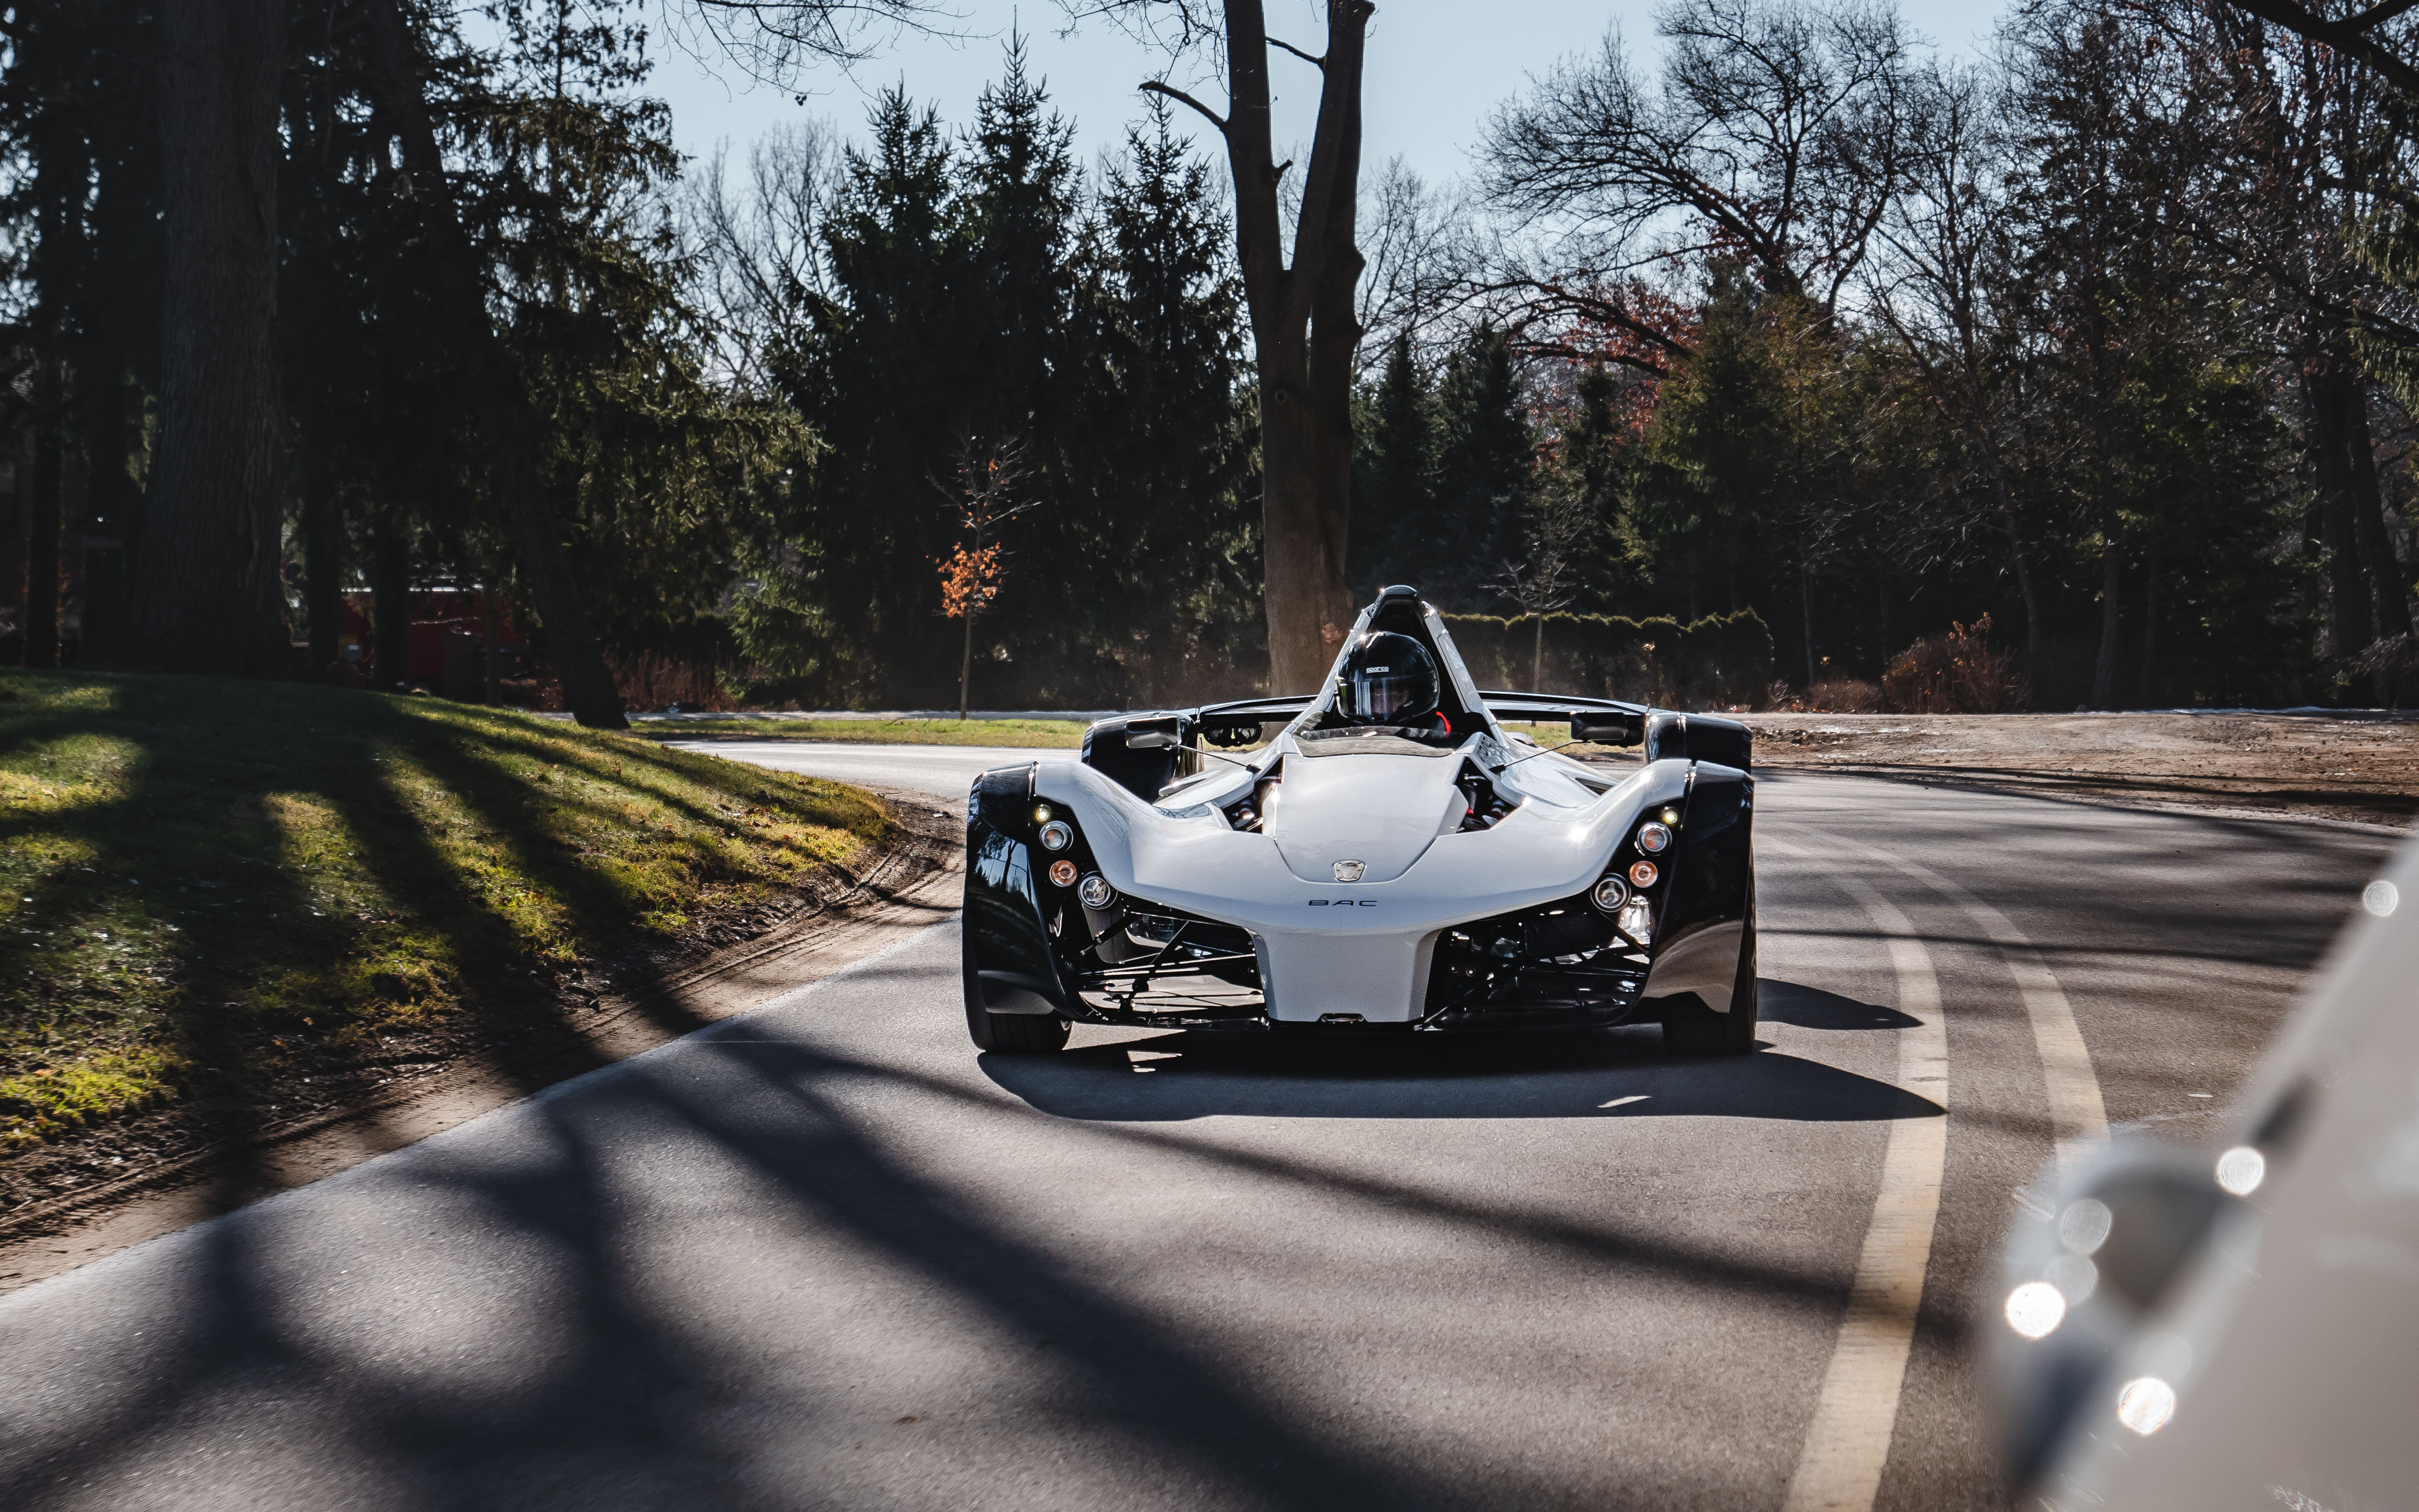 The road-legal BAC Mono on a backroad in Michigan